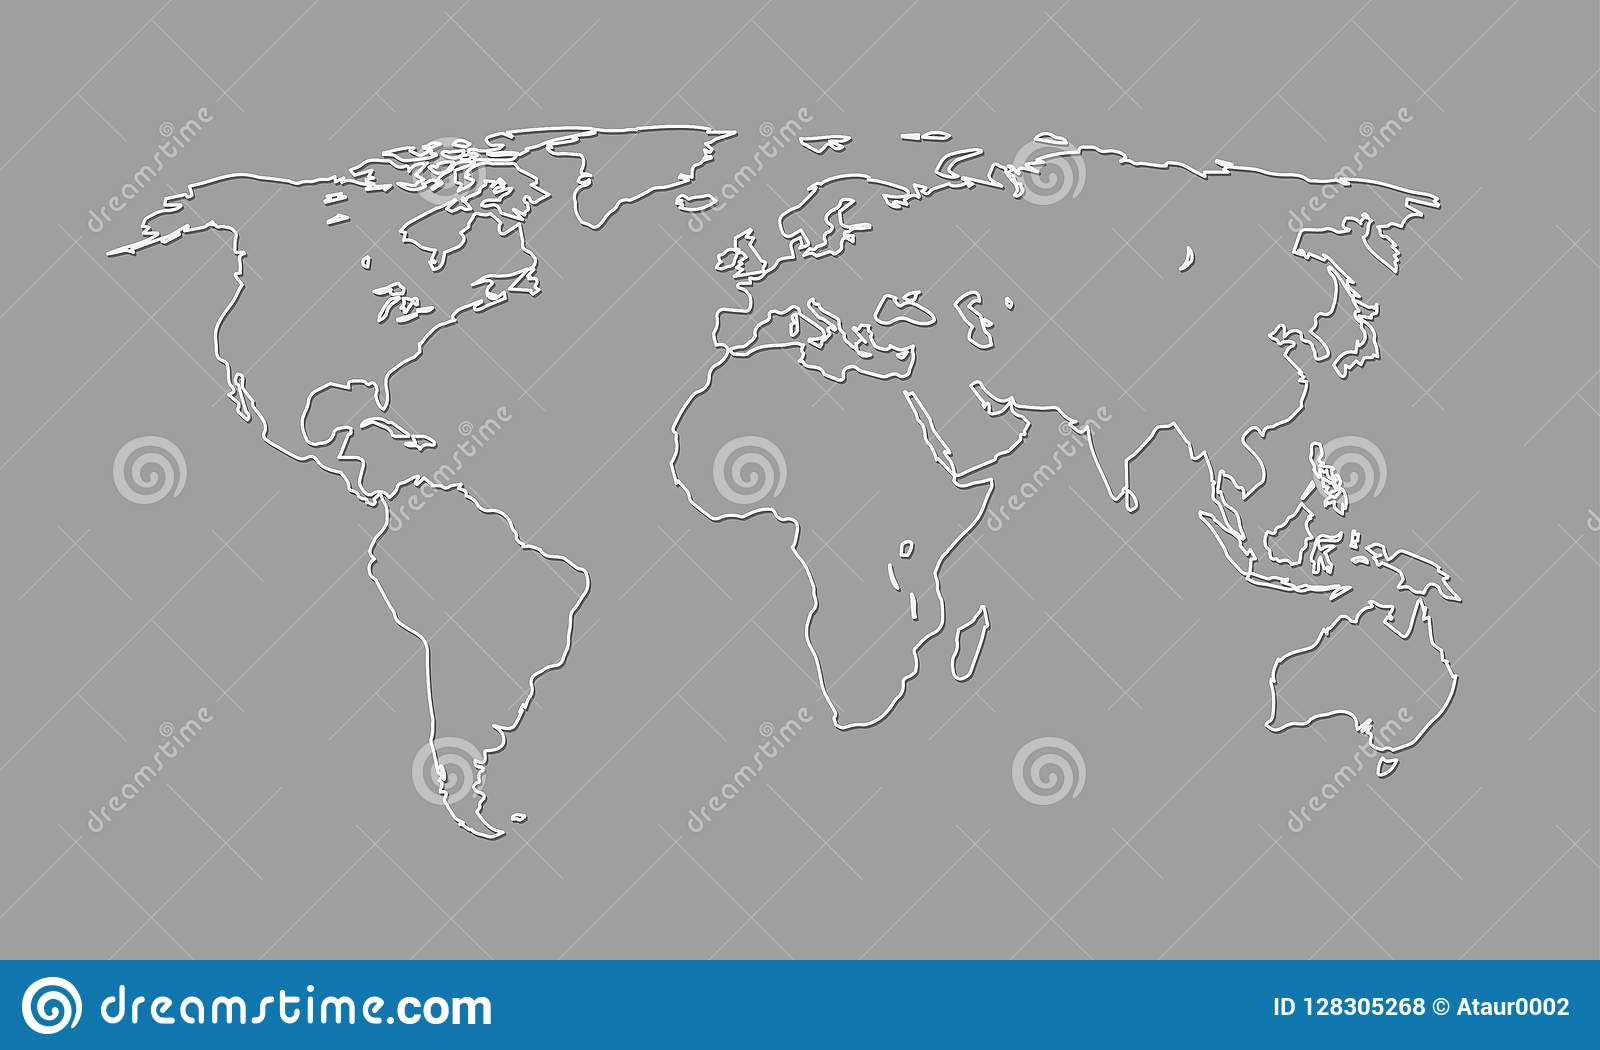 A Cool And Simple Black And White World Map Outline Of Different